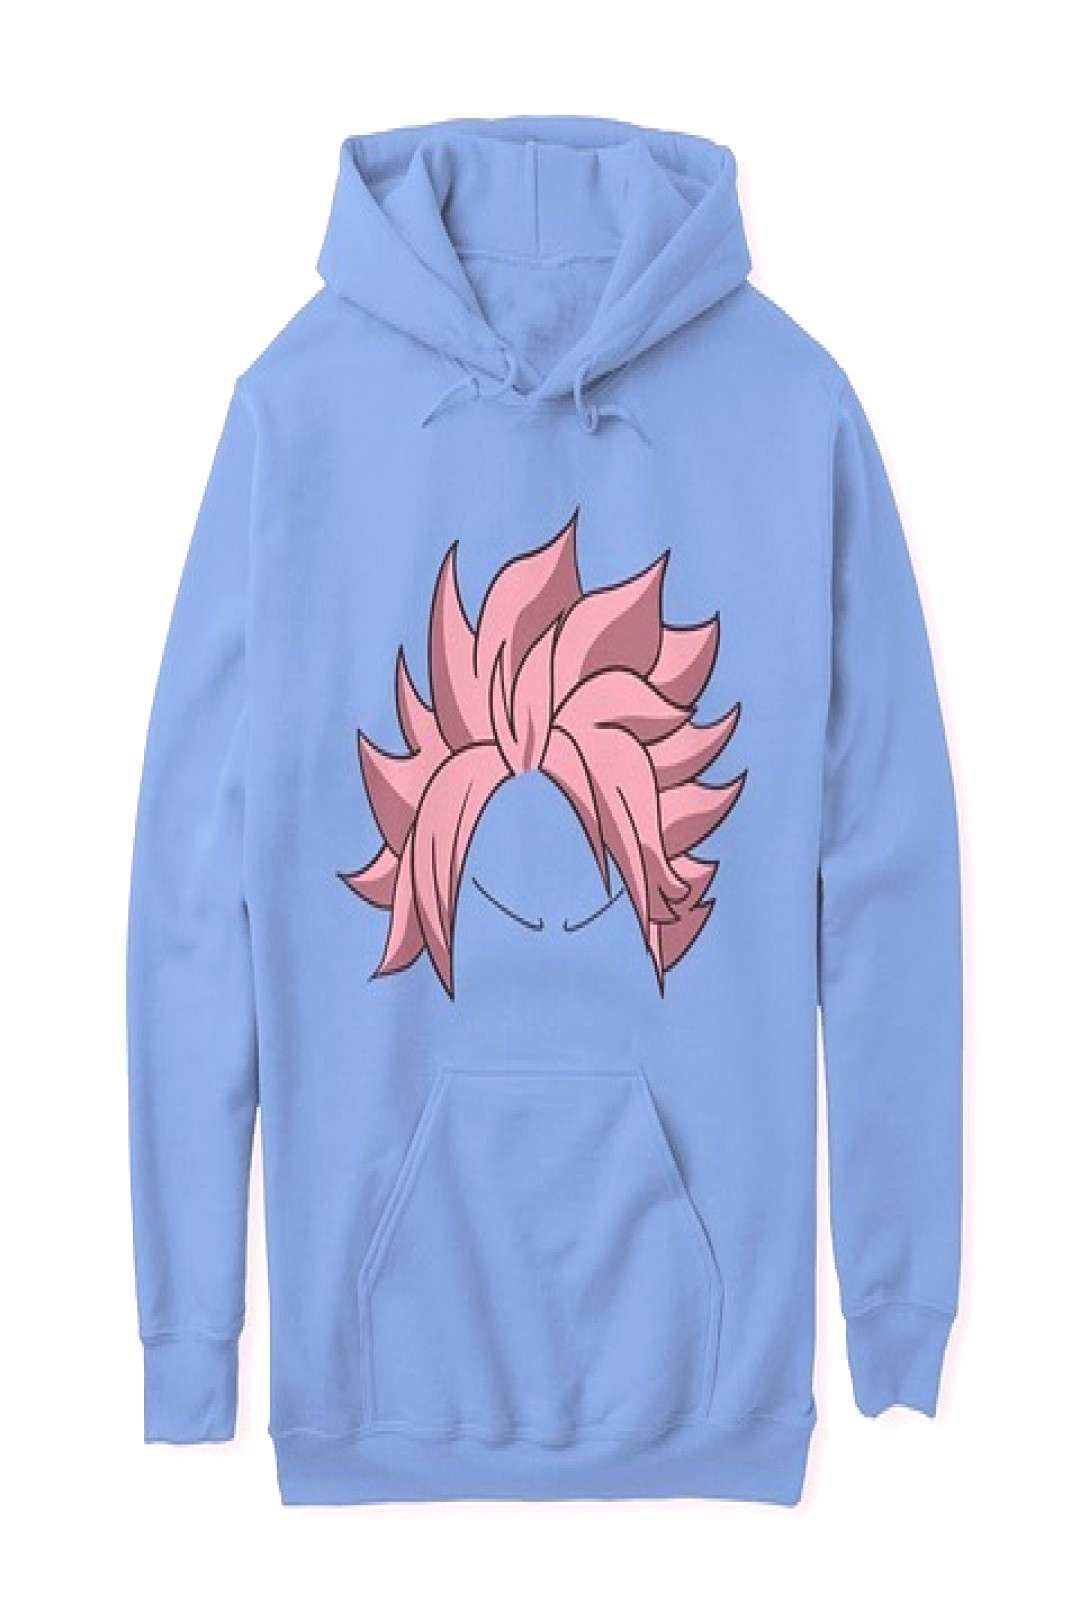 Dragon Slayer Hoodie just dropped, get yours in the link in my bi